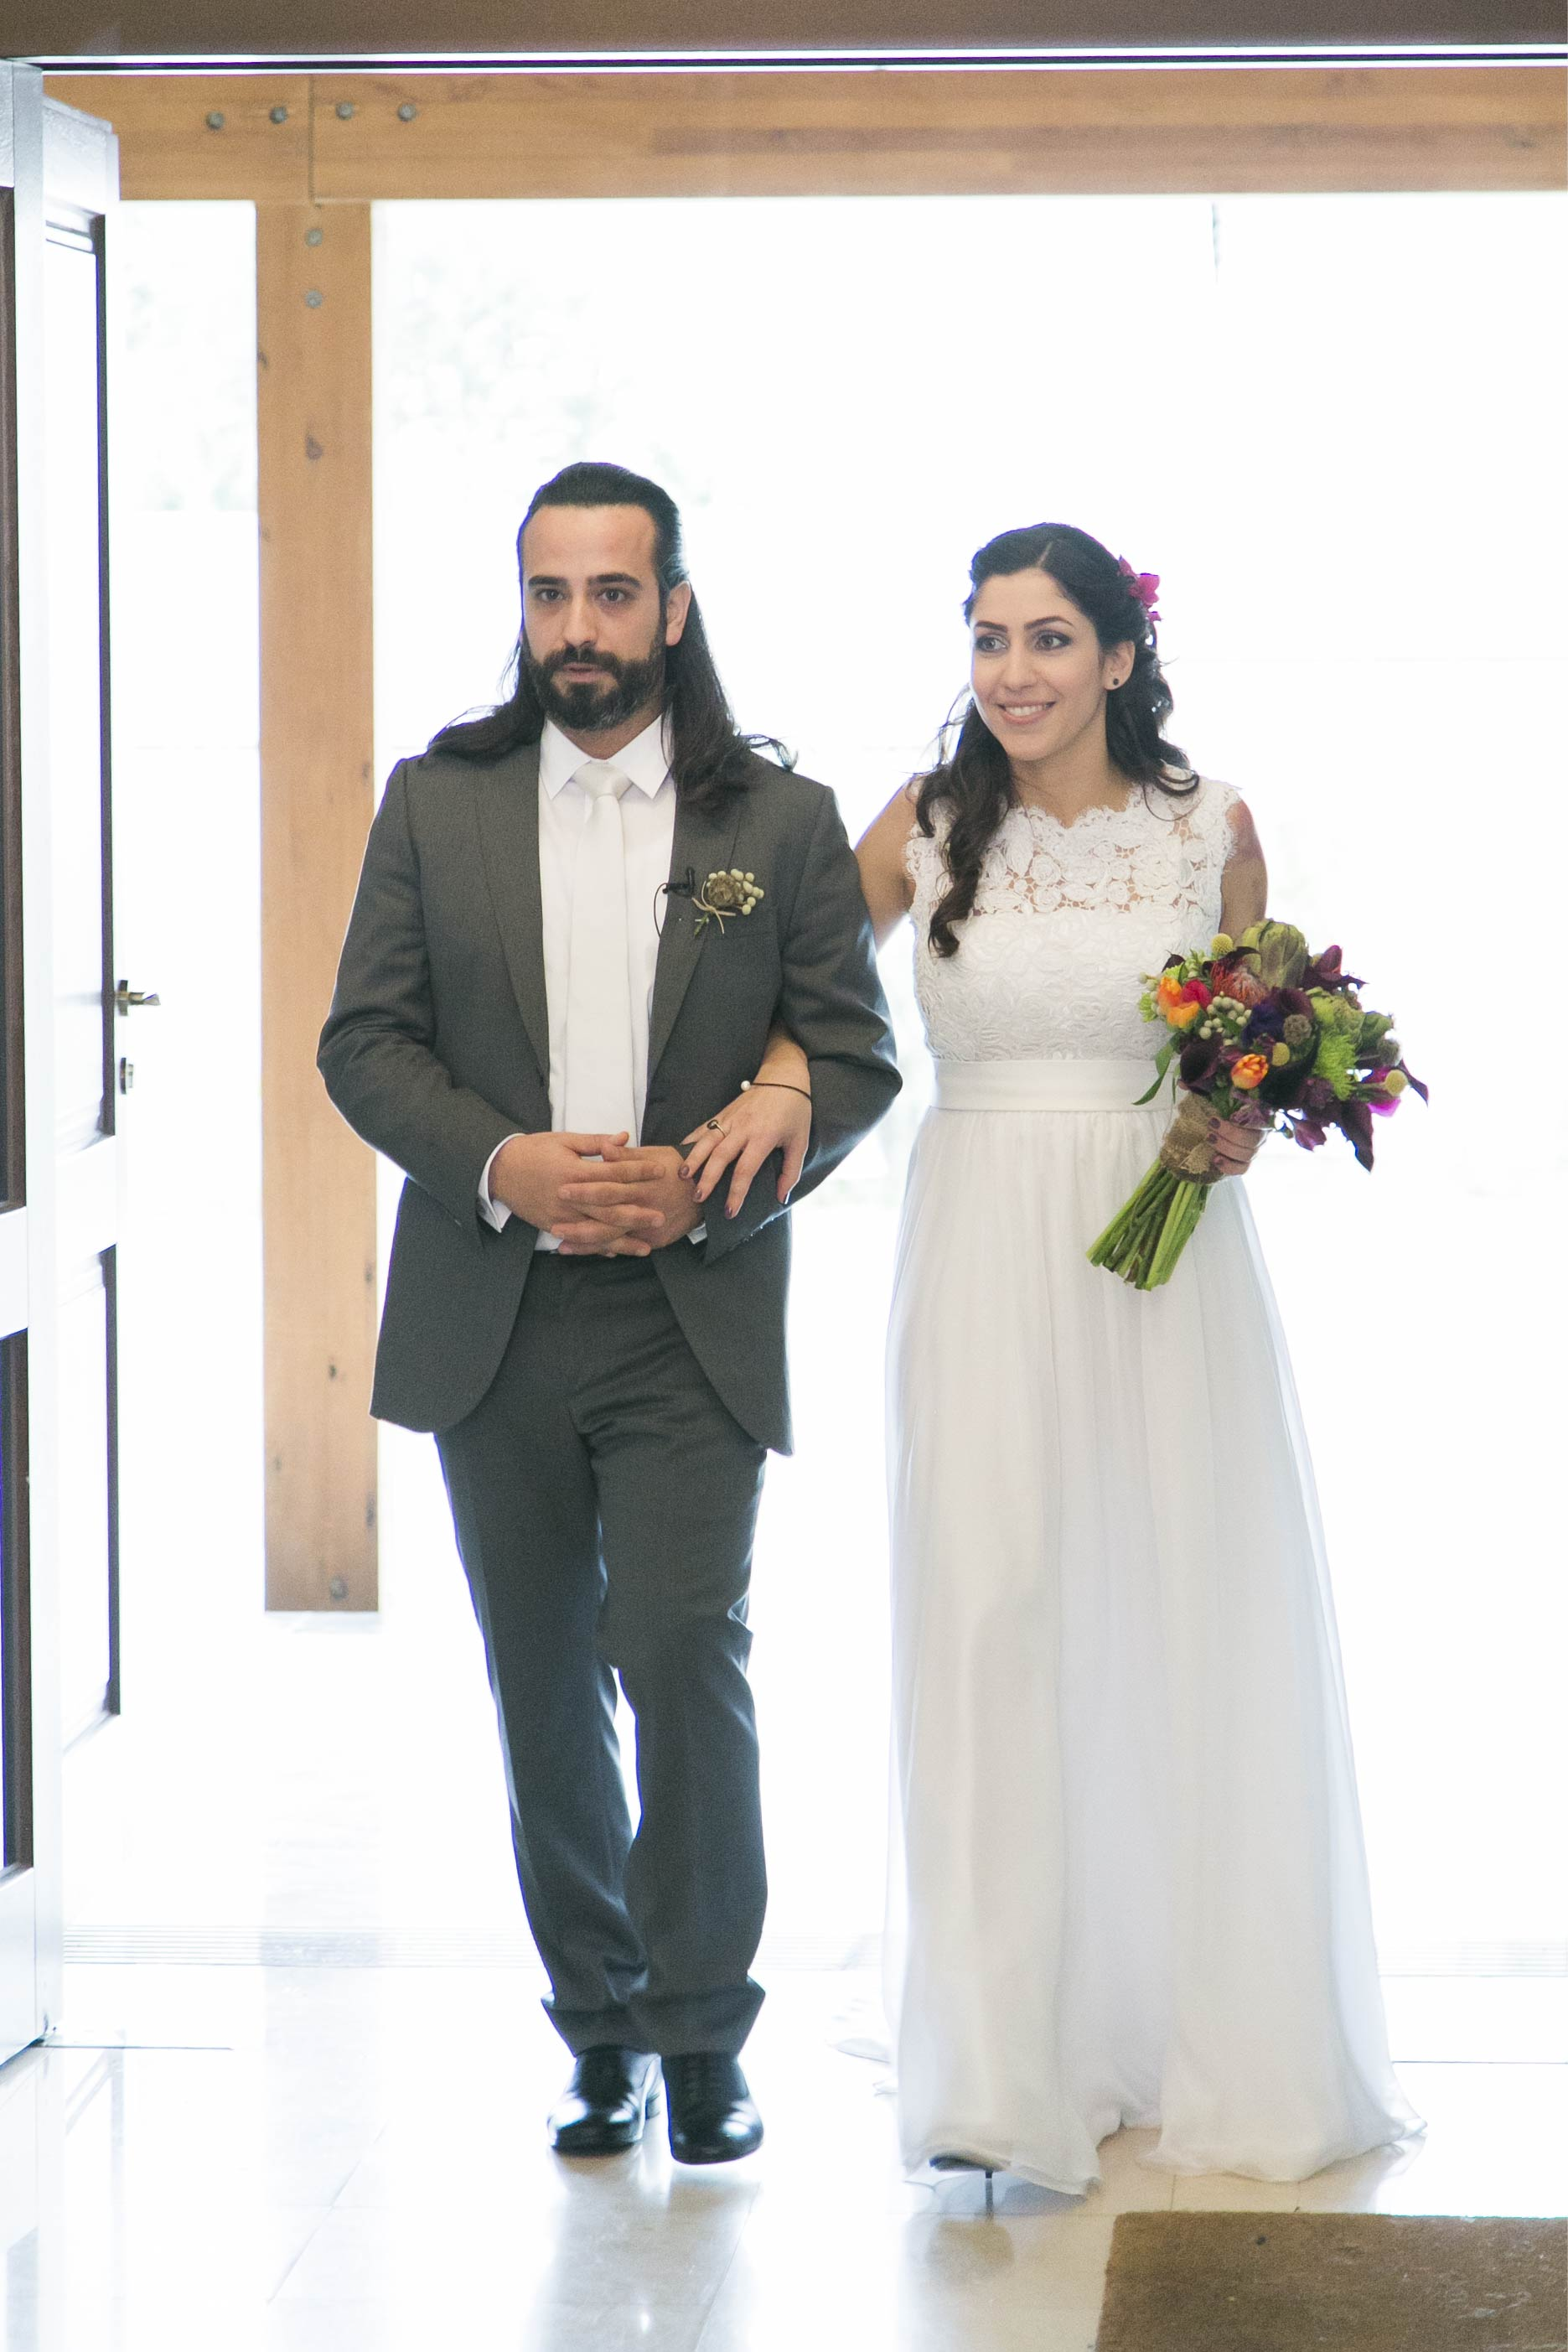 A colorful wedding in nicosia kanella mavri zachari events groom bride and the colorful buquet junglespirit Image collections